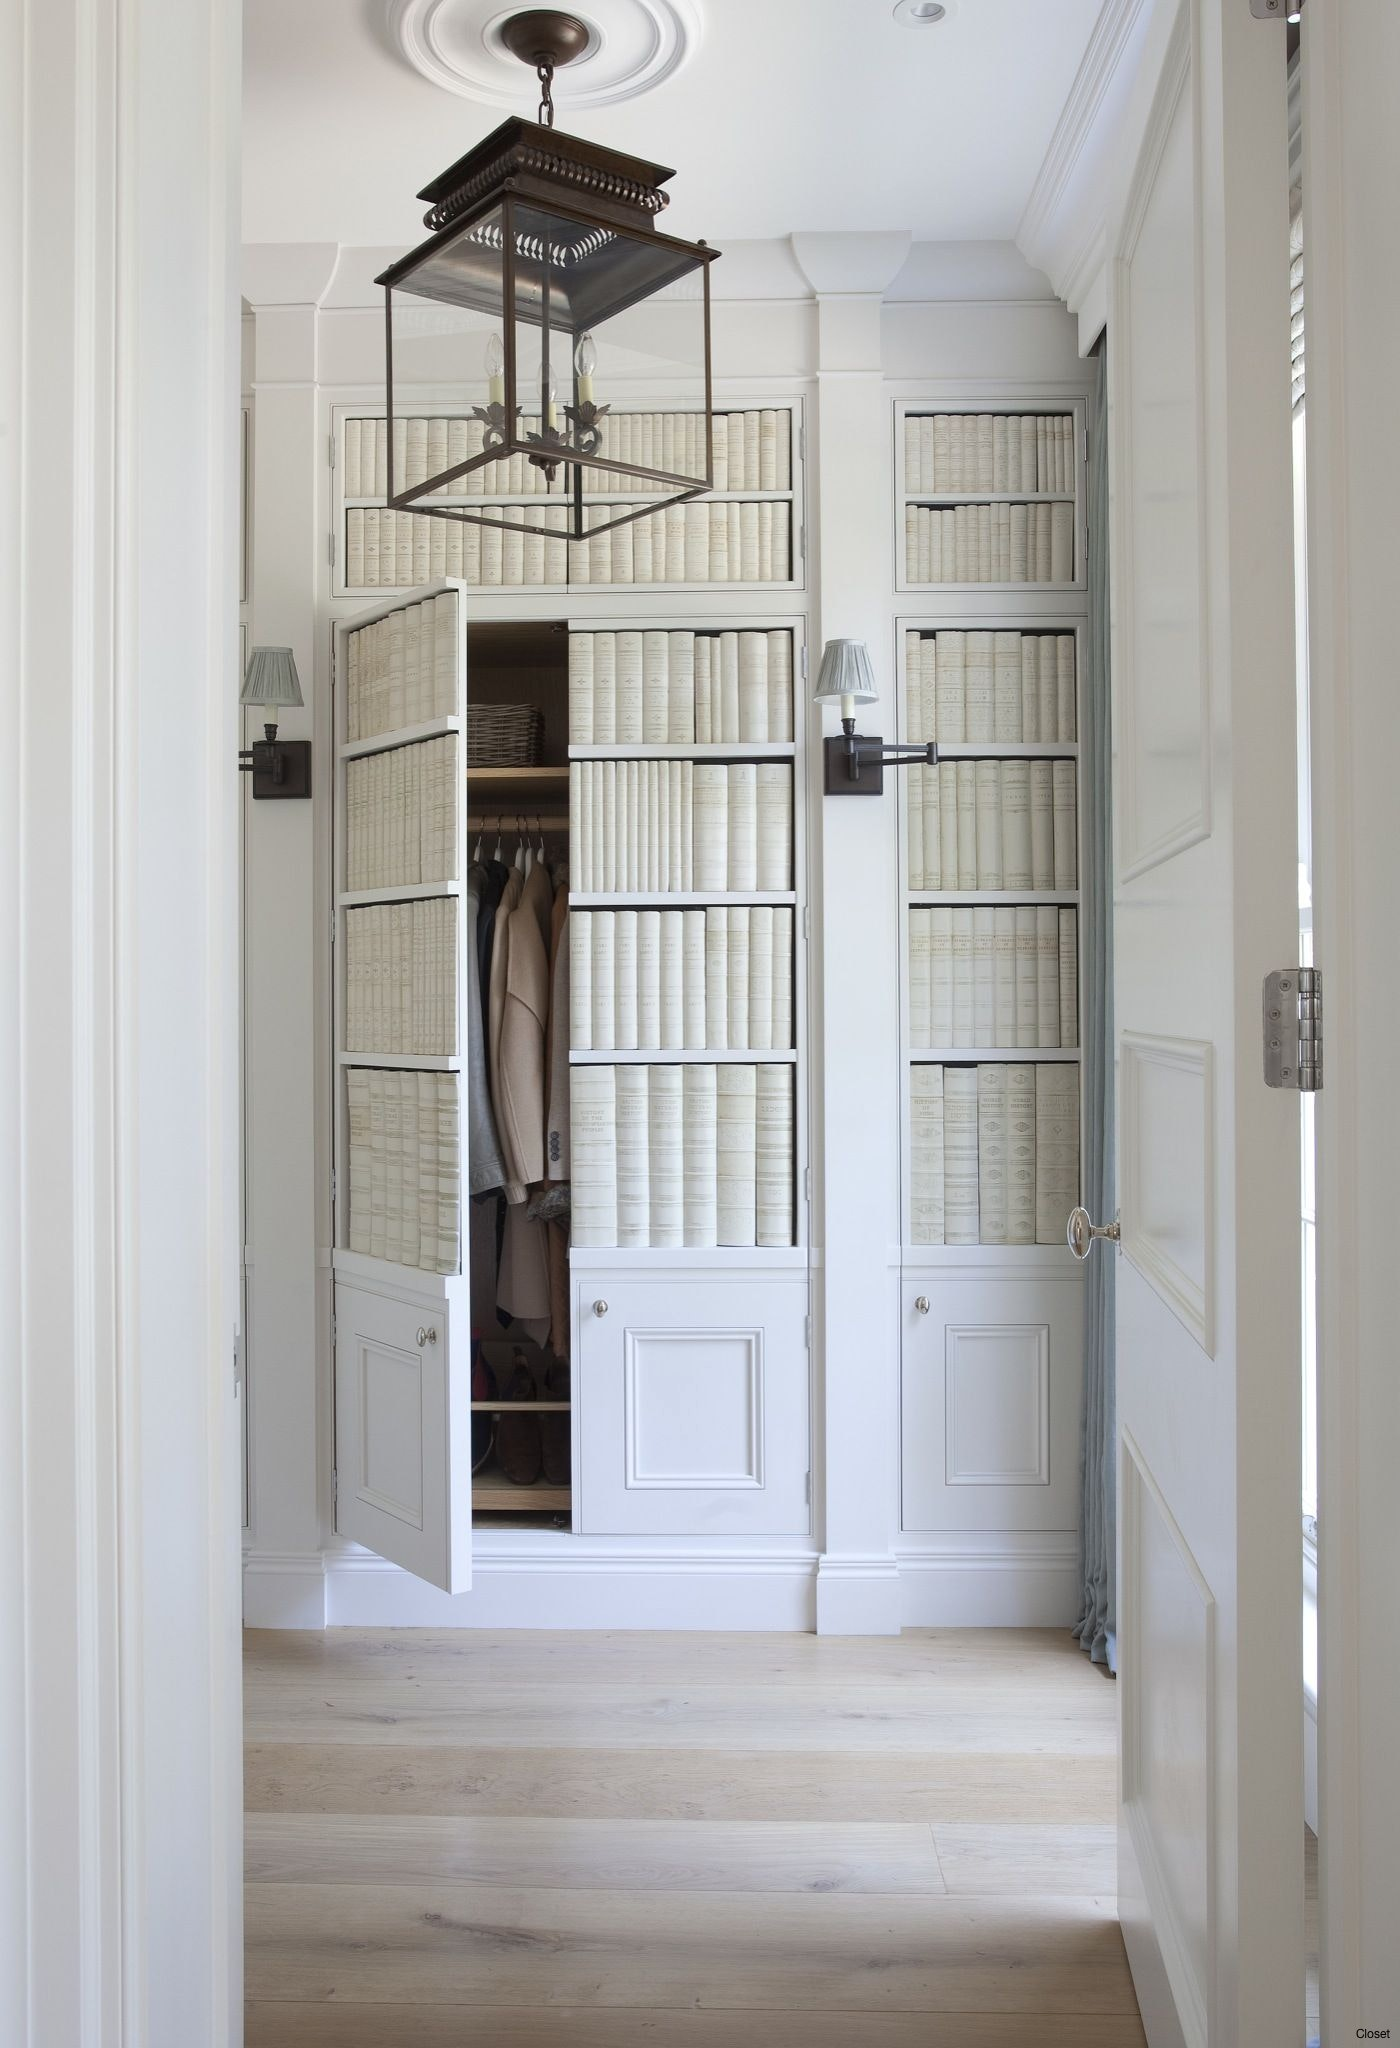 Hidden doors \u0026 secret rooms-the house feature that never goes out of style ( & The Ideal House Design: Hidden Doors \u0026 Secret Rooms | Live Simply ...